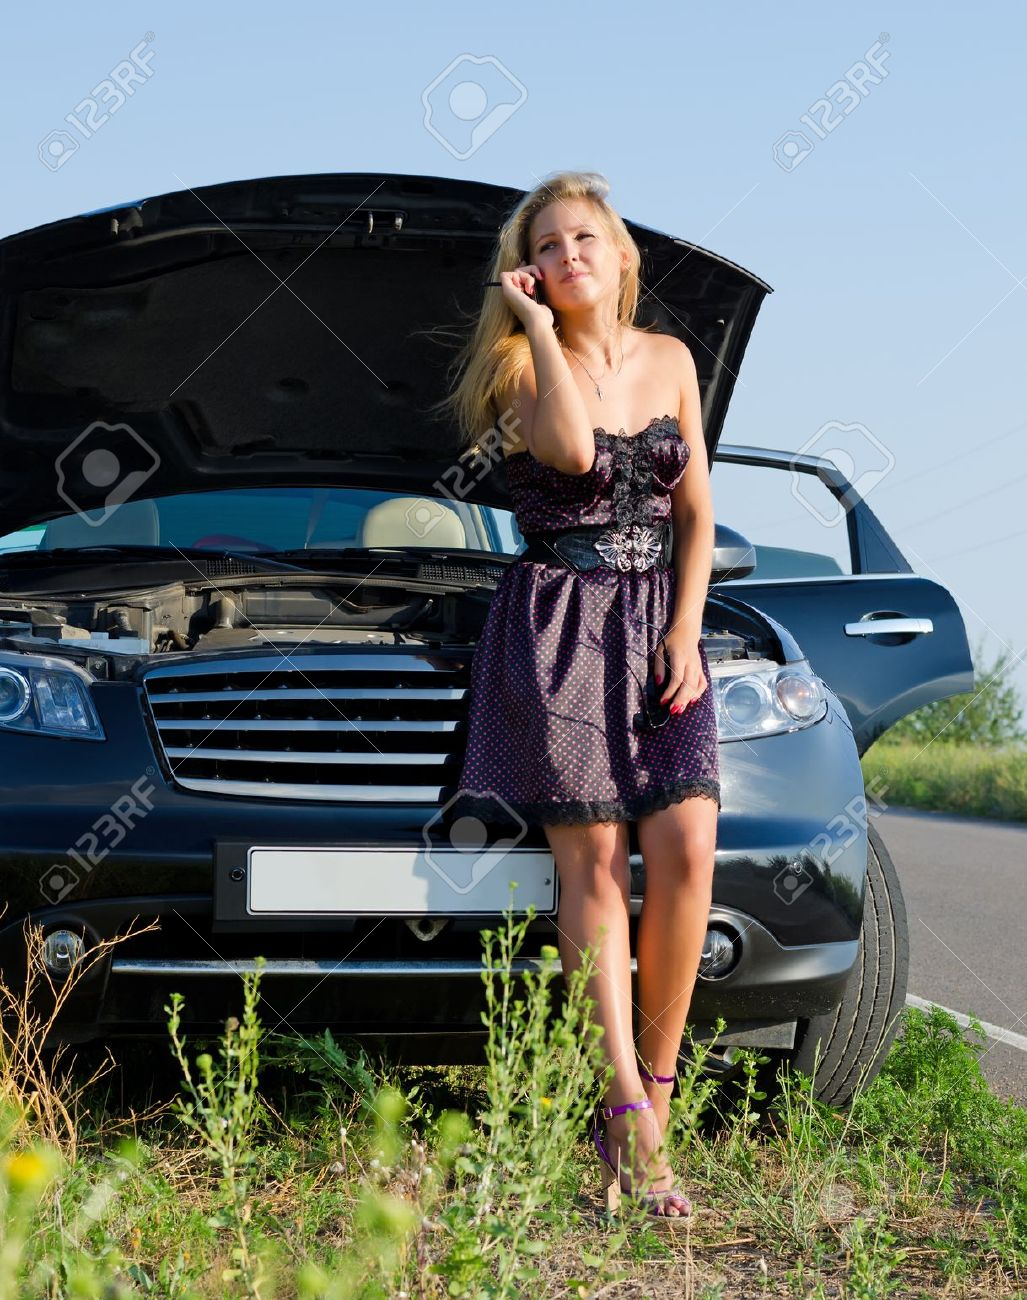 Fashionable young woman phoning for help on her mobile as she leans against her car which has broken down in the countryside - 14894197